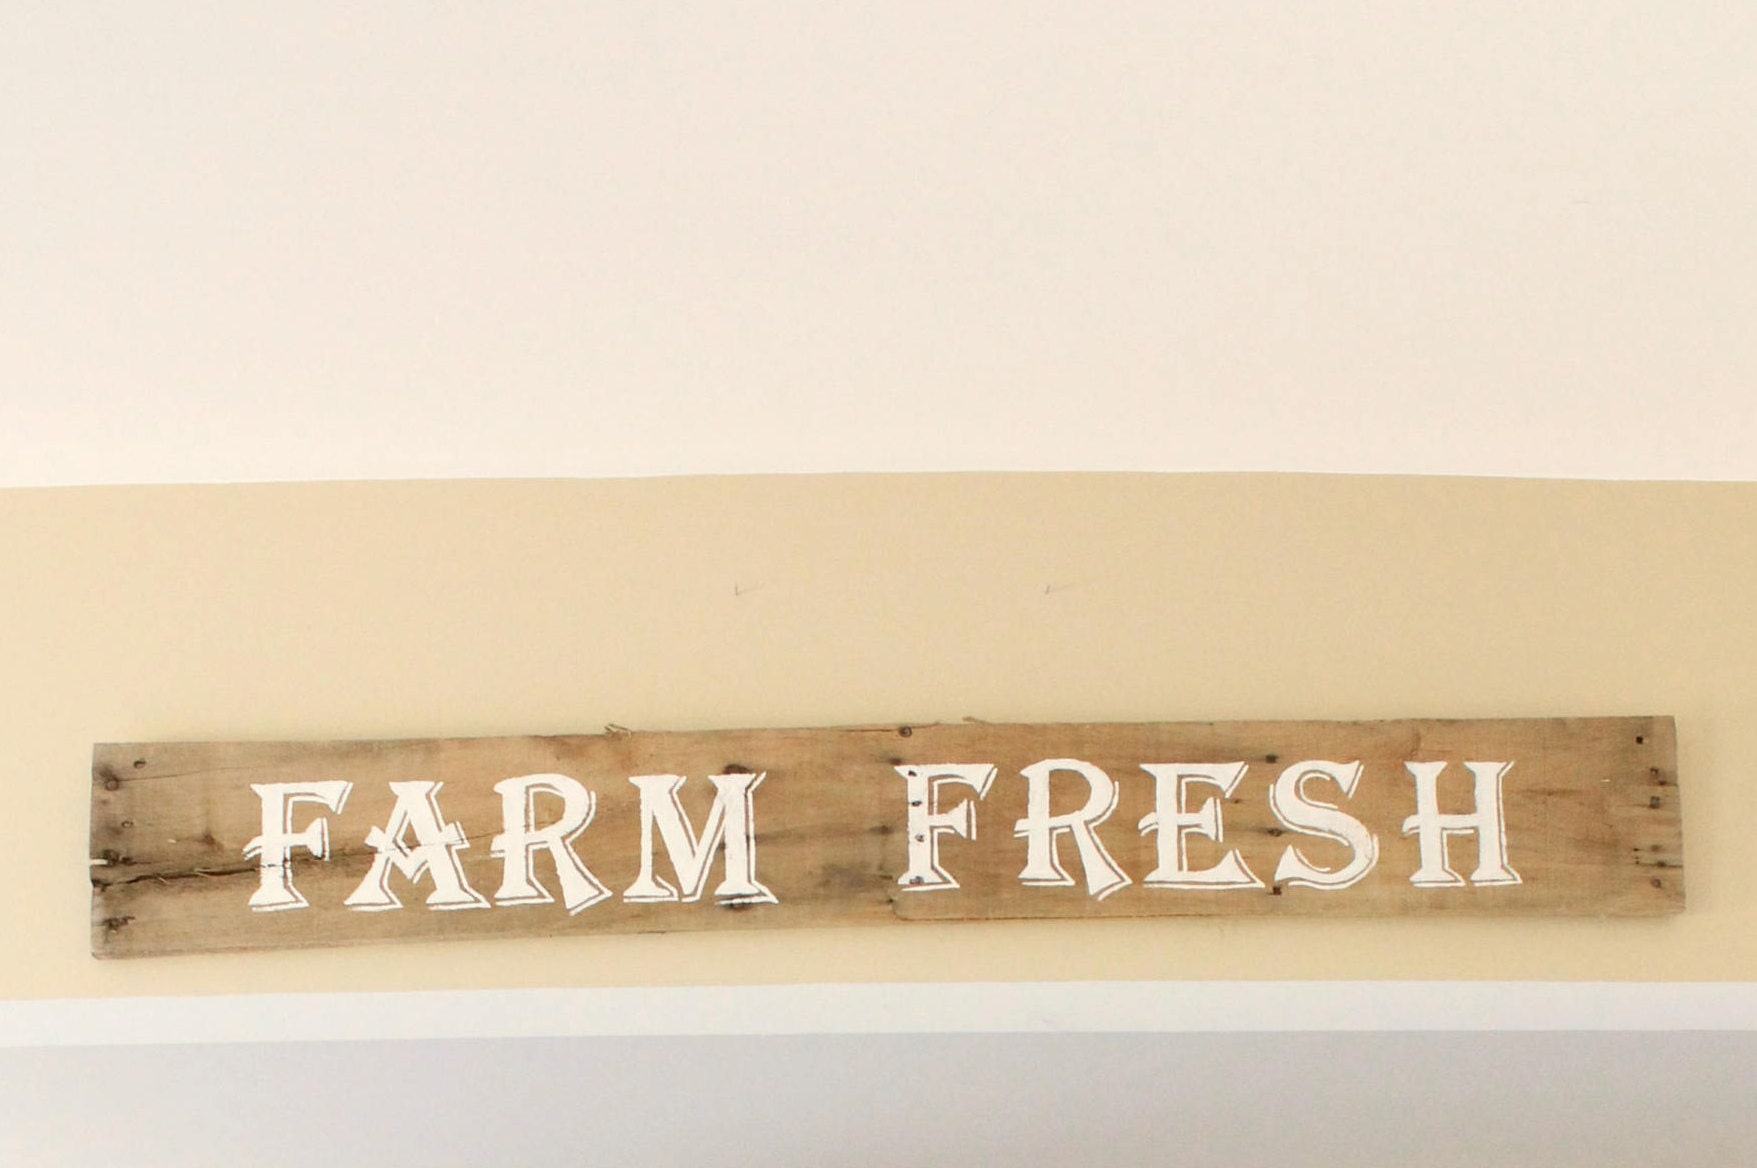 Rustic Farm Fresh Wood Sign, Rustic Home Decor, Hand Painted ...